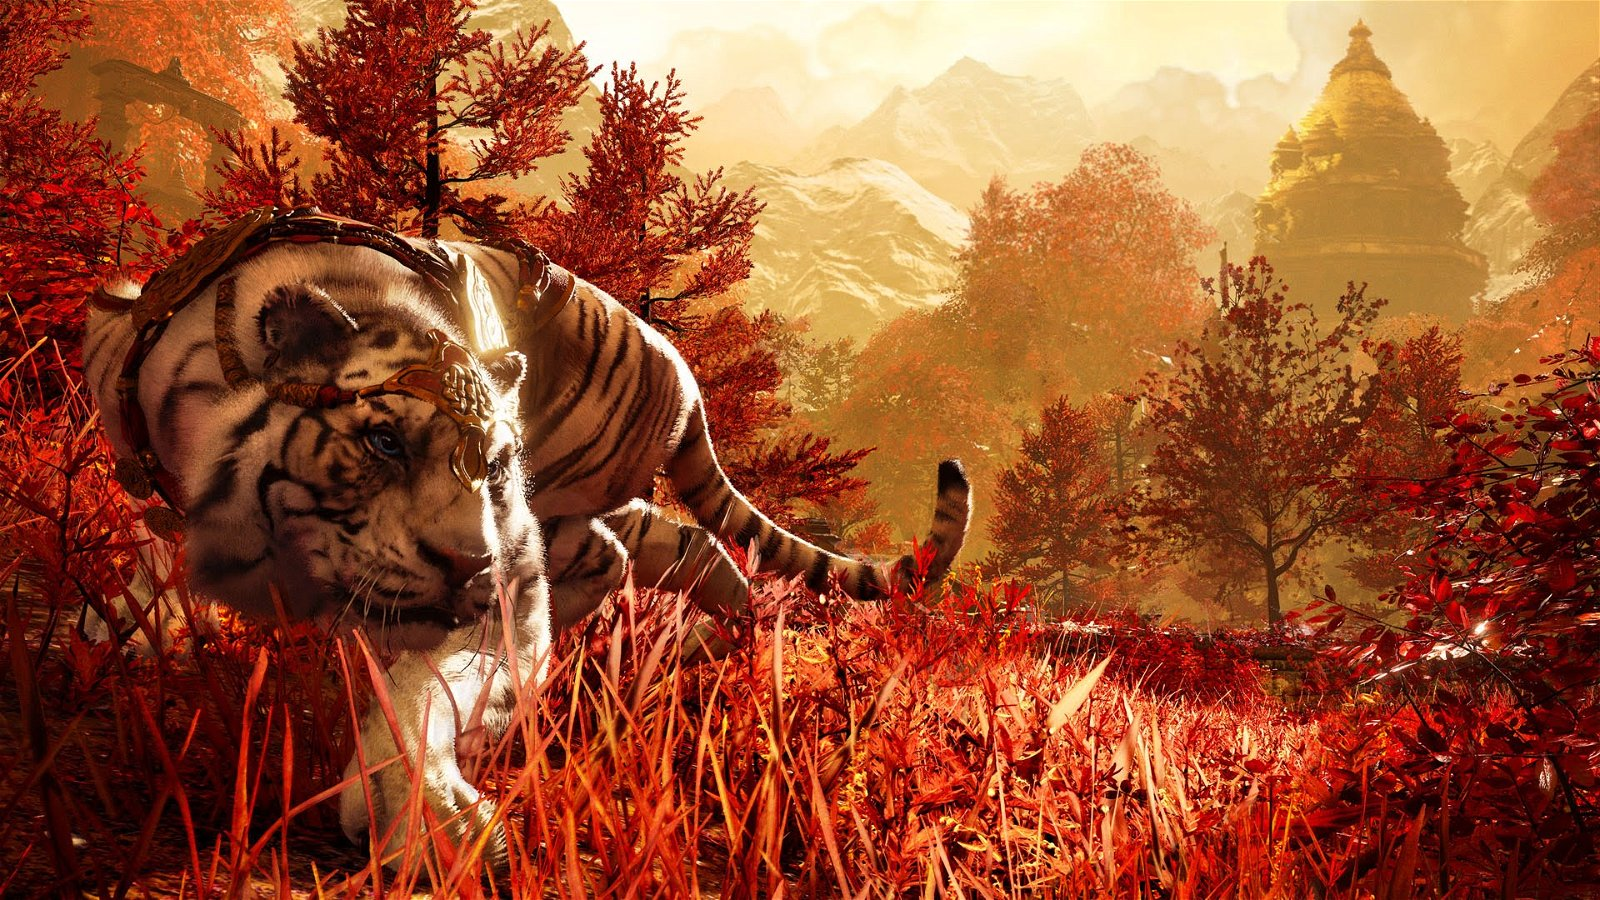 Far Cry 4 - Shangri La